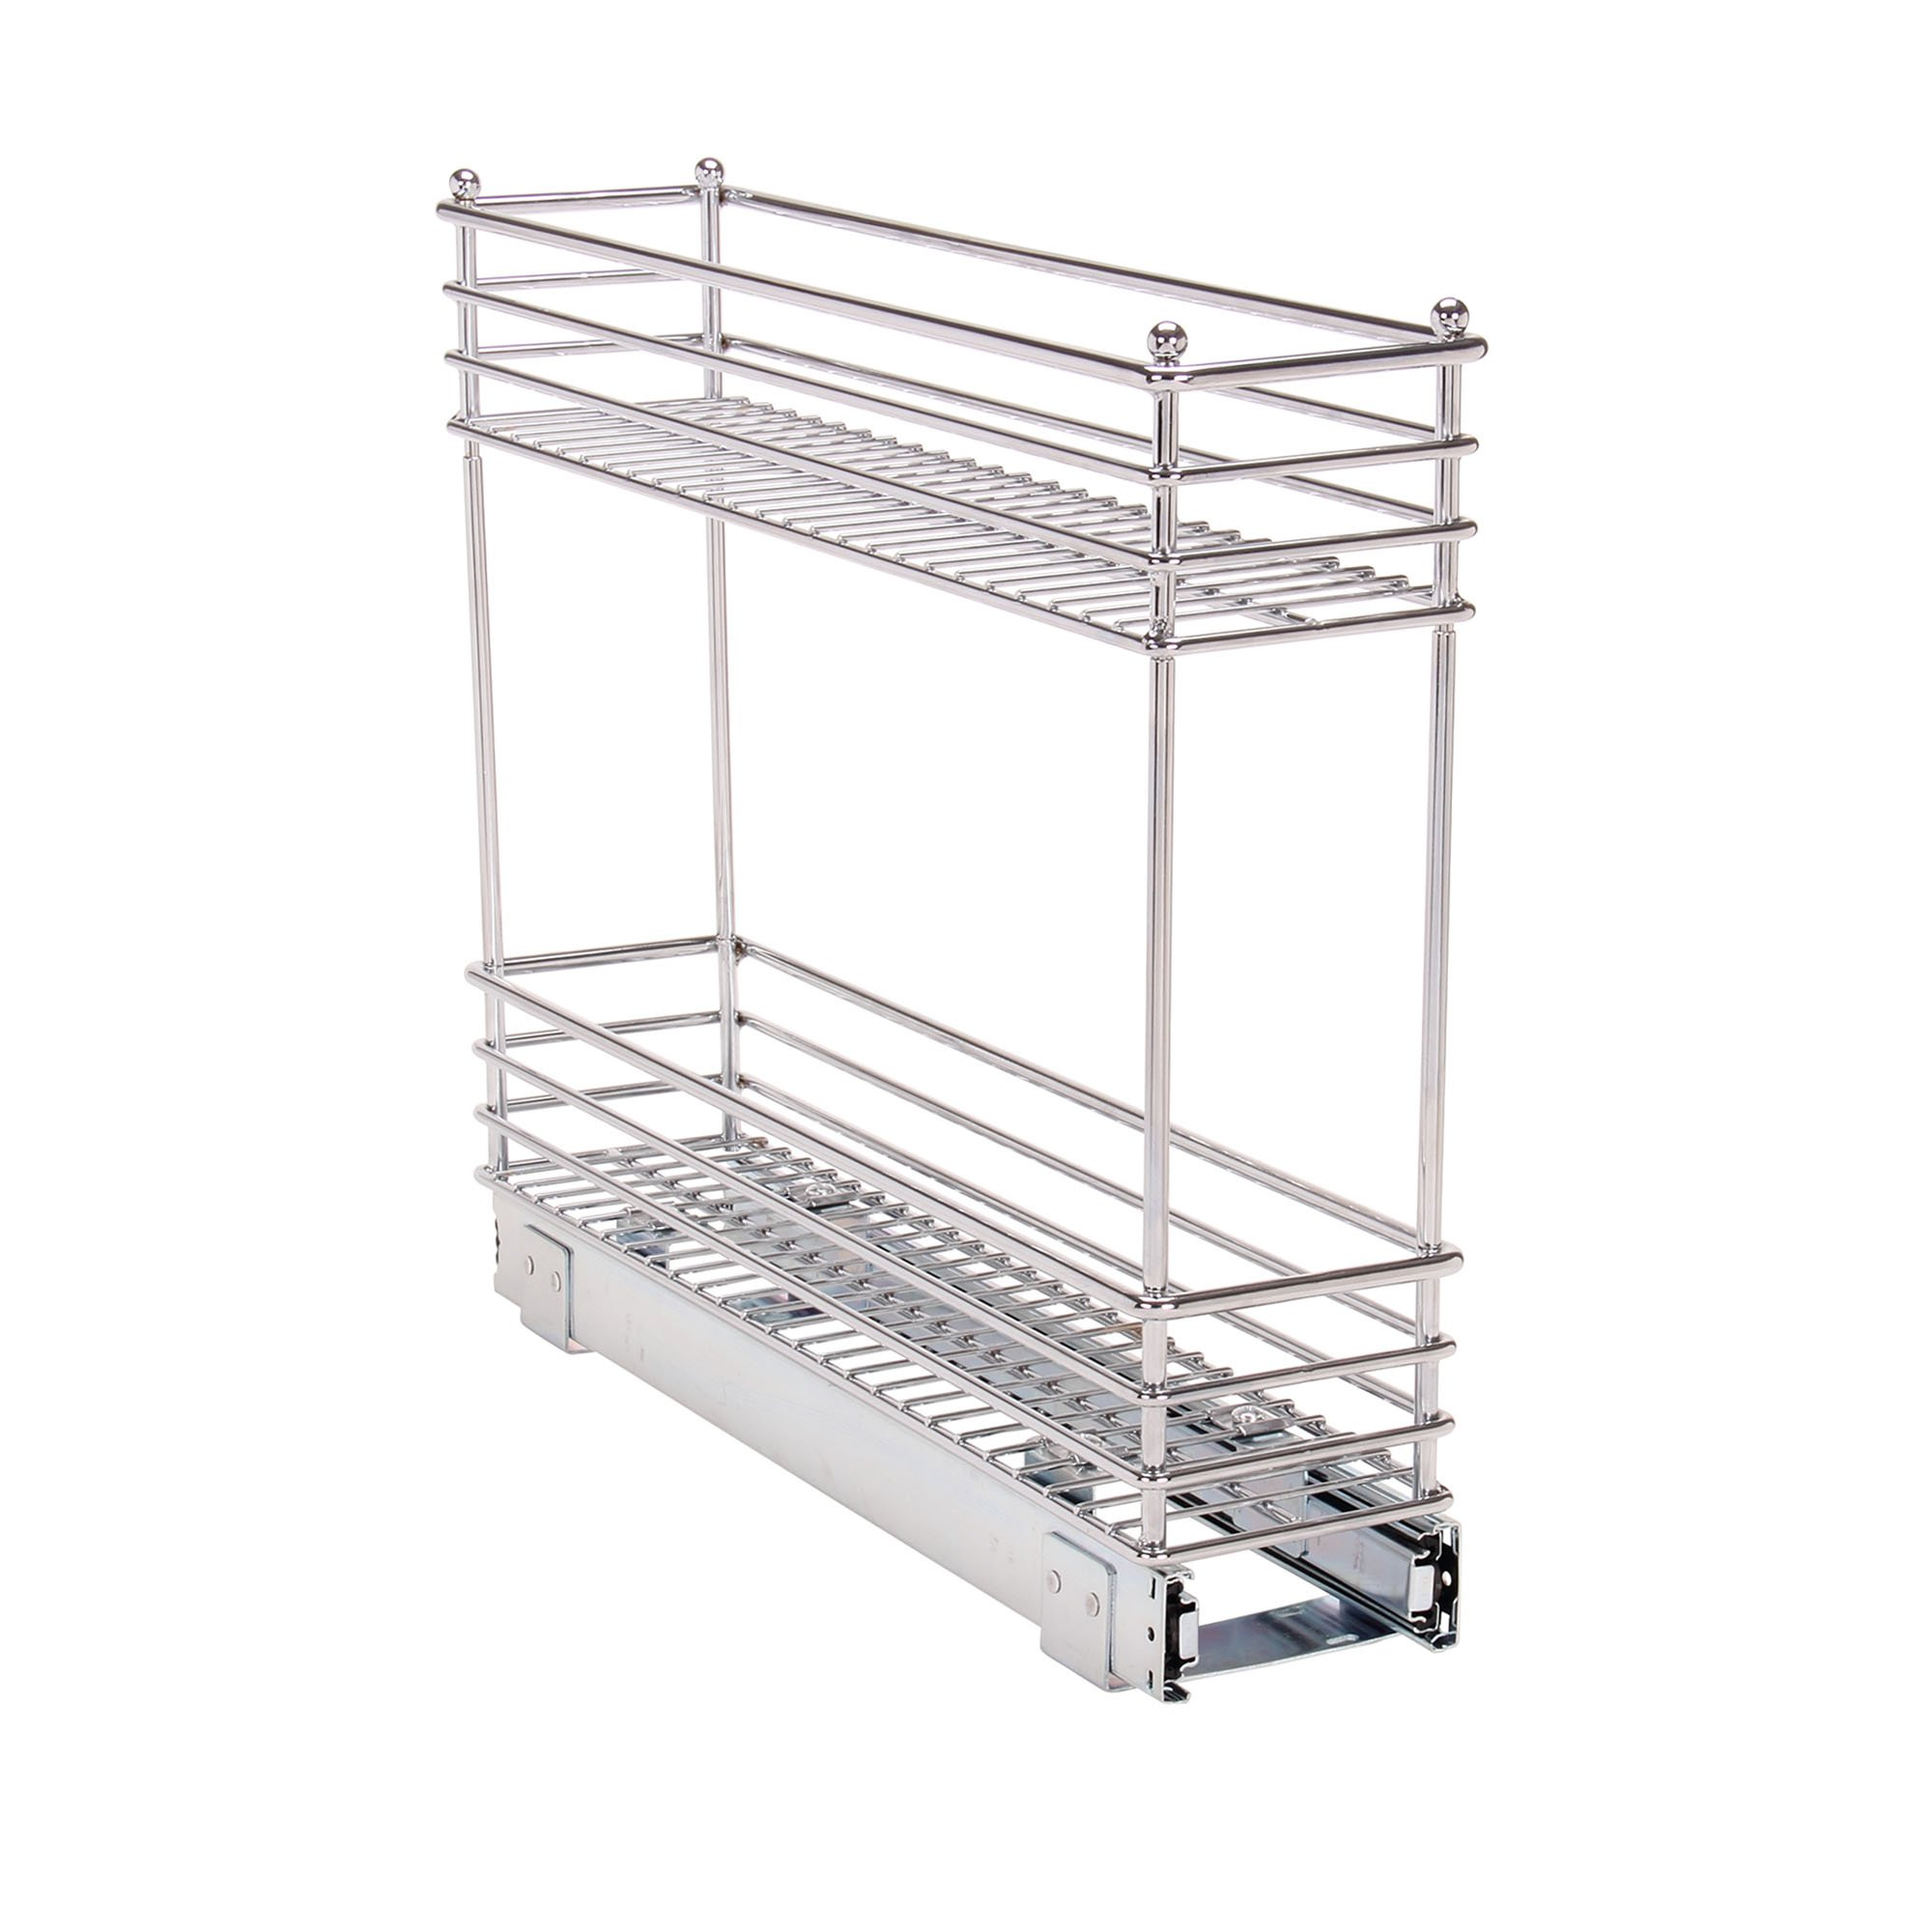 Household Essentials Glidez Narrow Sliding Organizer, 5'', Chrome